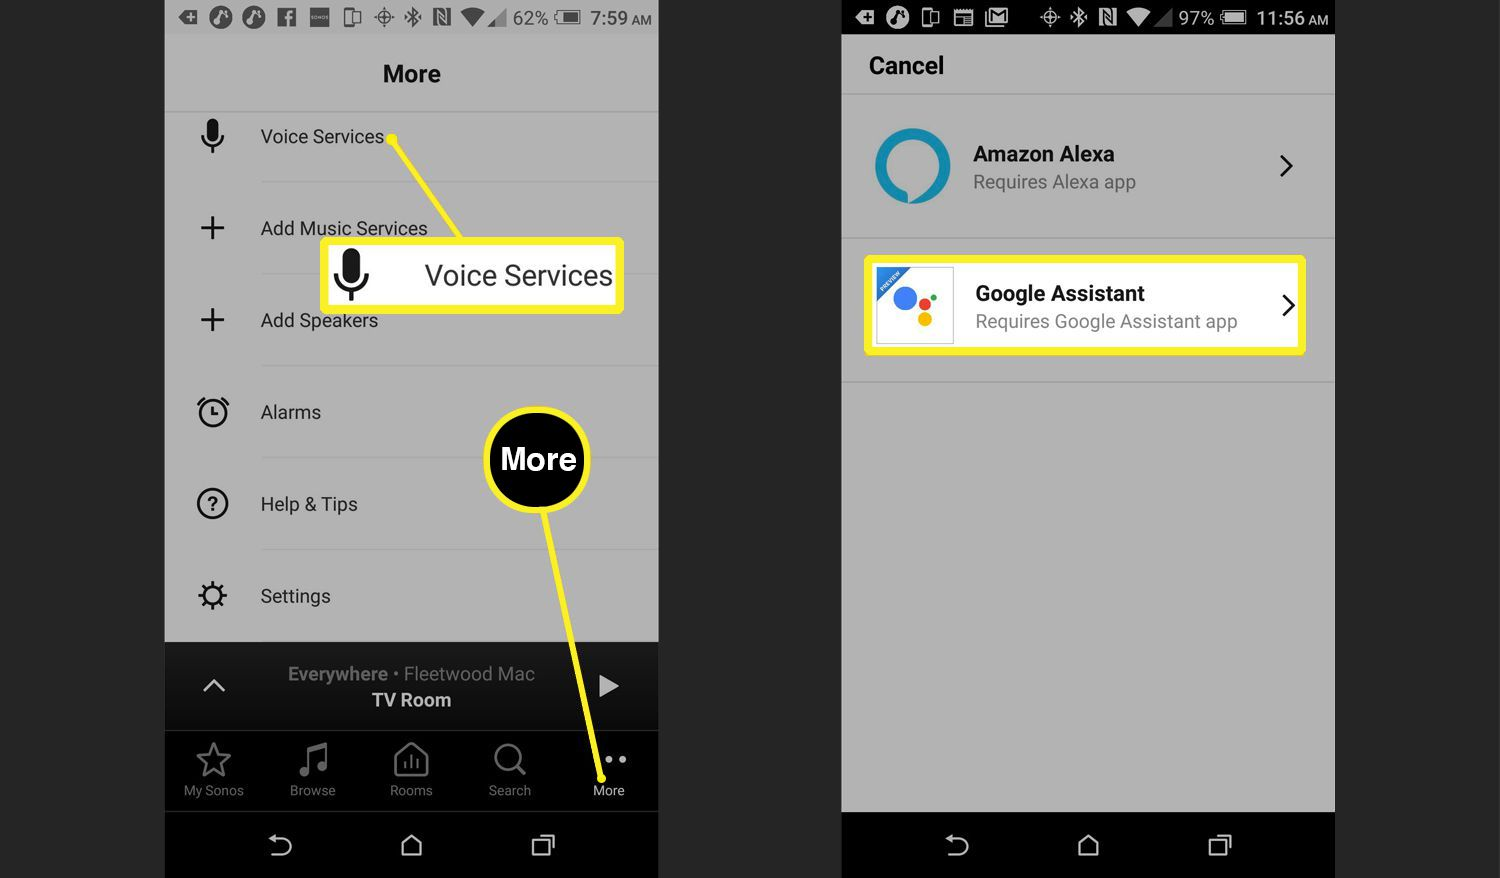 Voice Services set up on phone